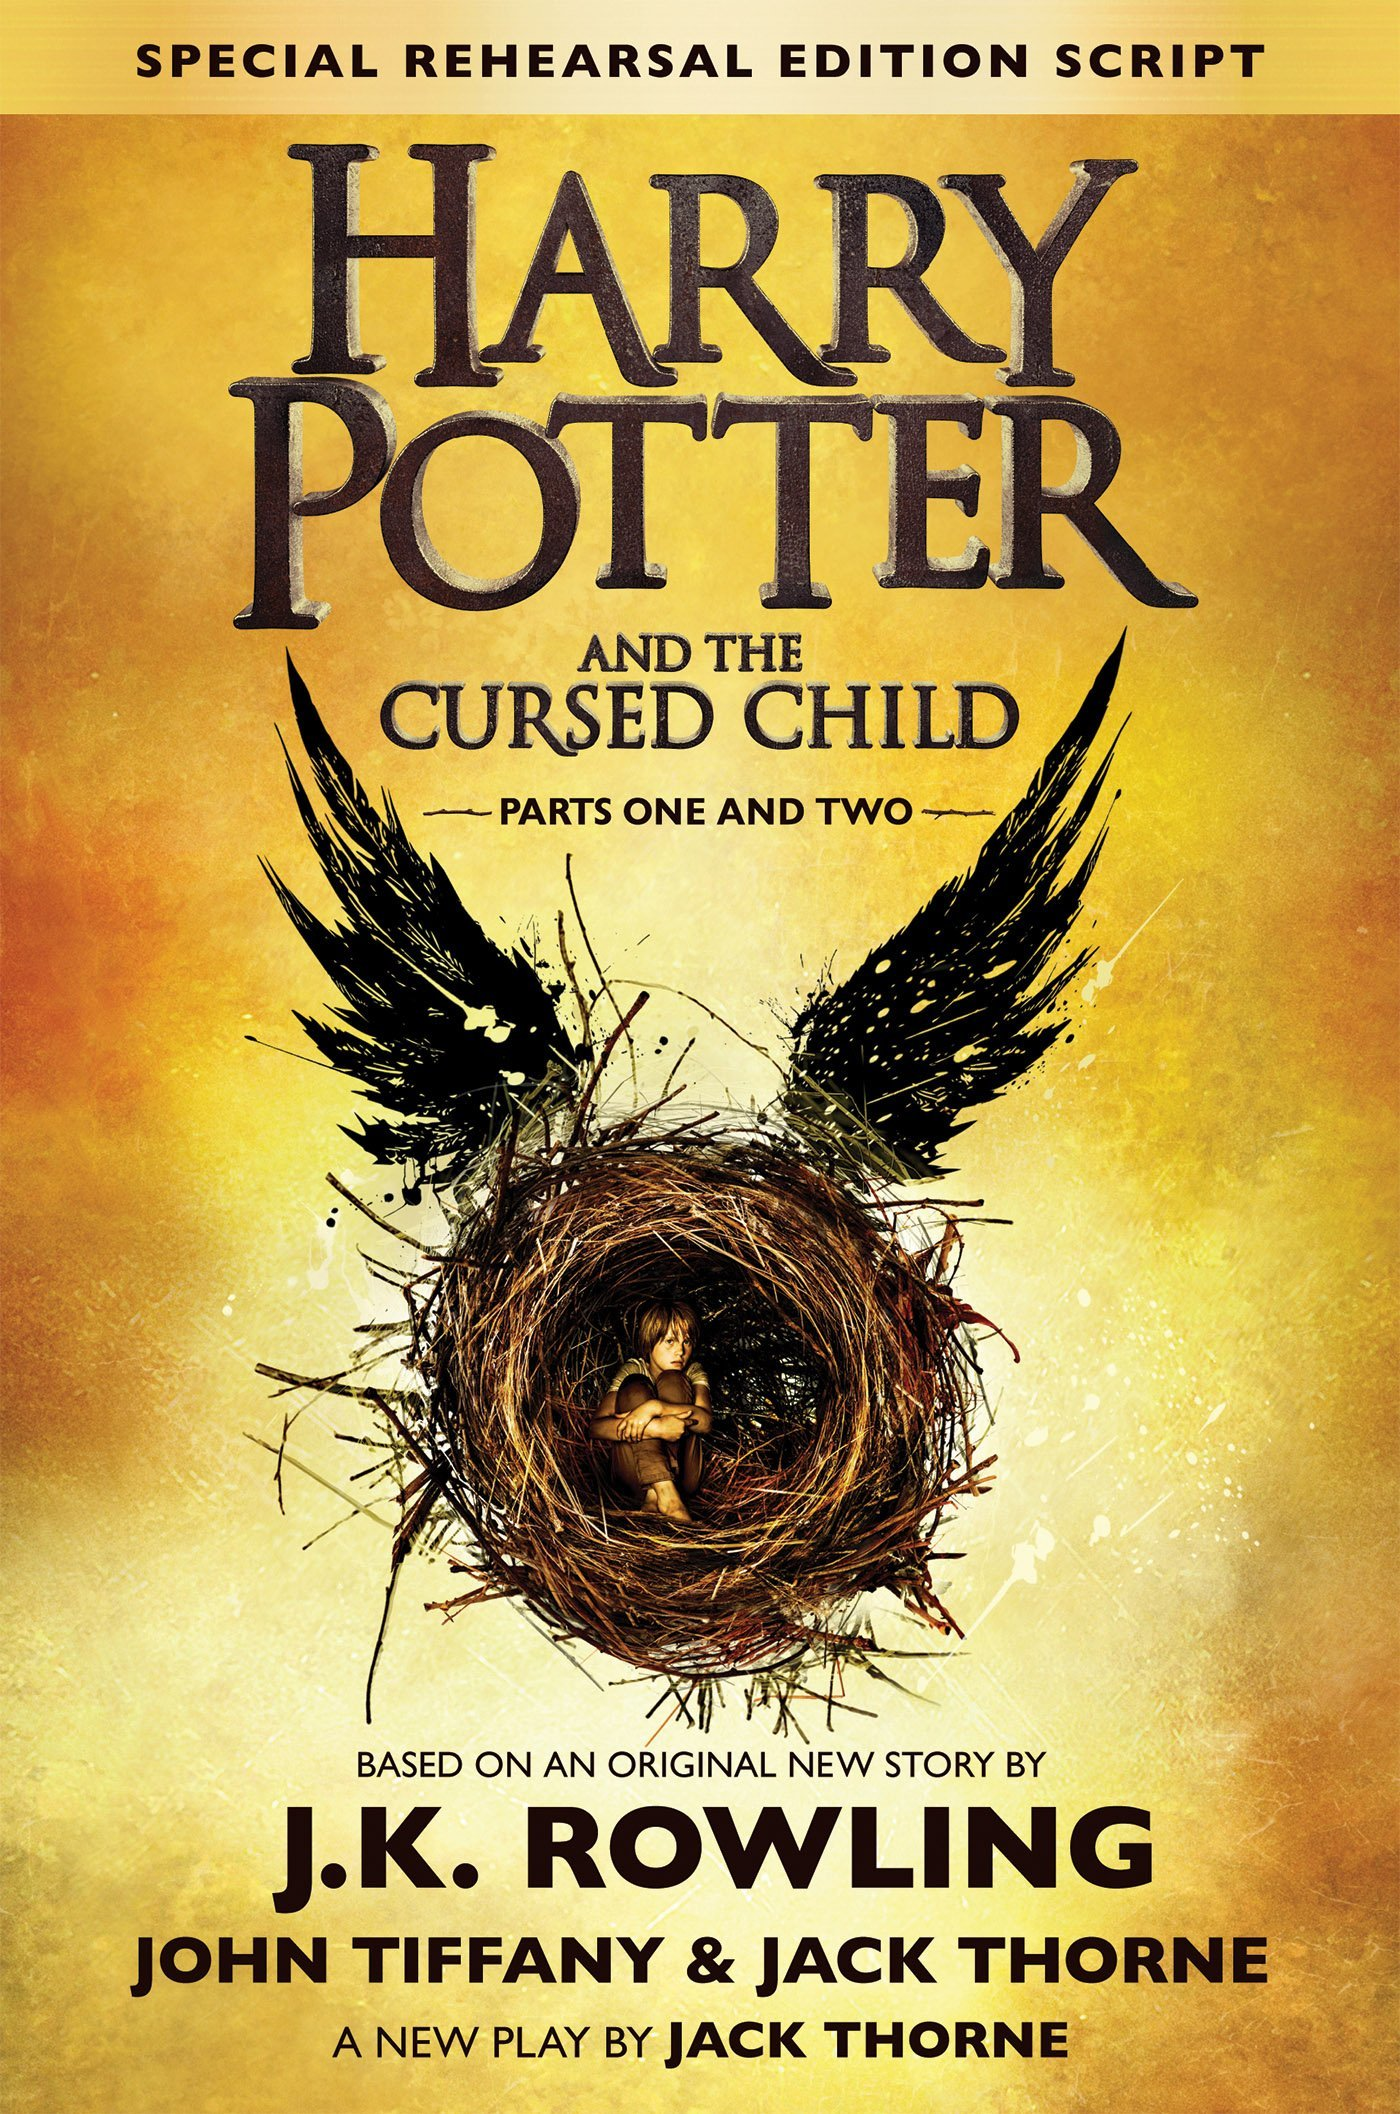 http://vignette1.wikia.nocookie.net/harrypotter/images/1/14/Harry_Potter_and_the_Cursed_Child_Script_Book_Cover.jpg/revision/latest?cb=20160726165903